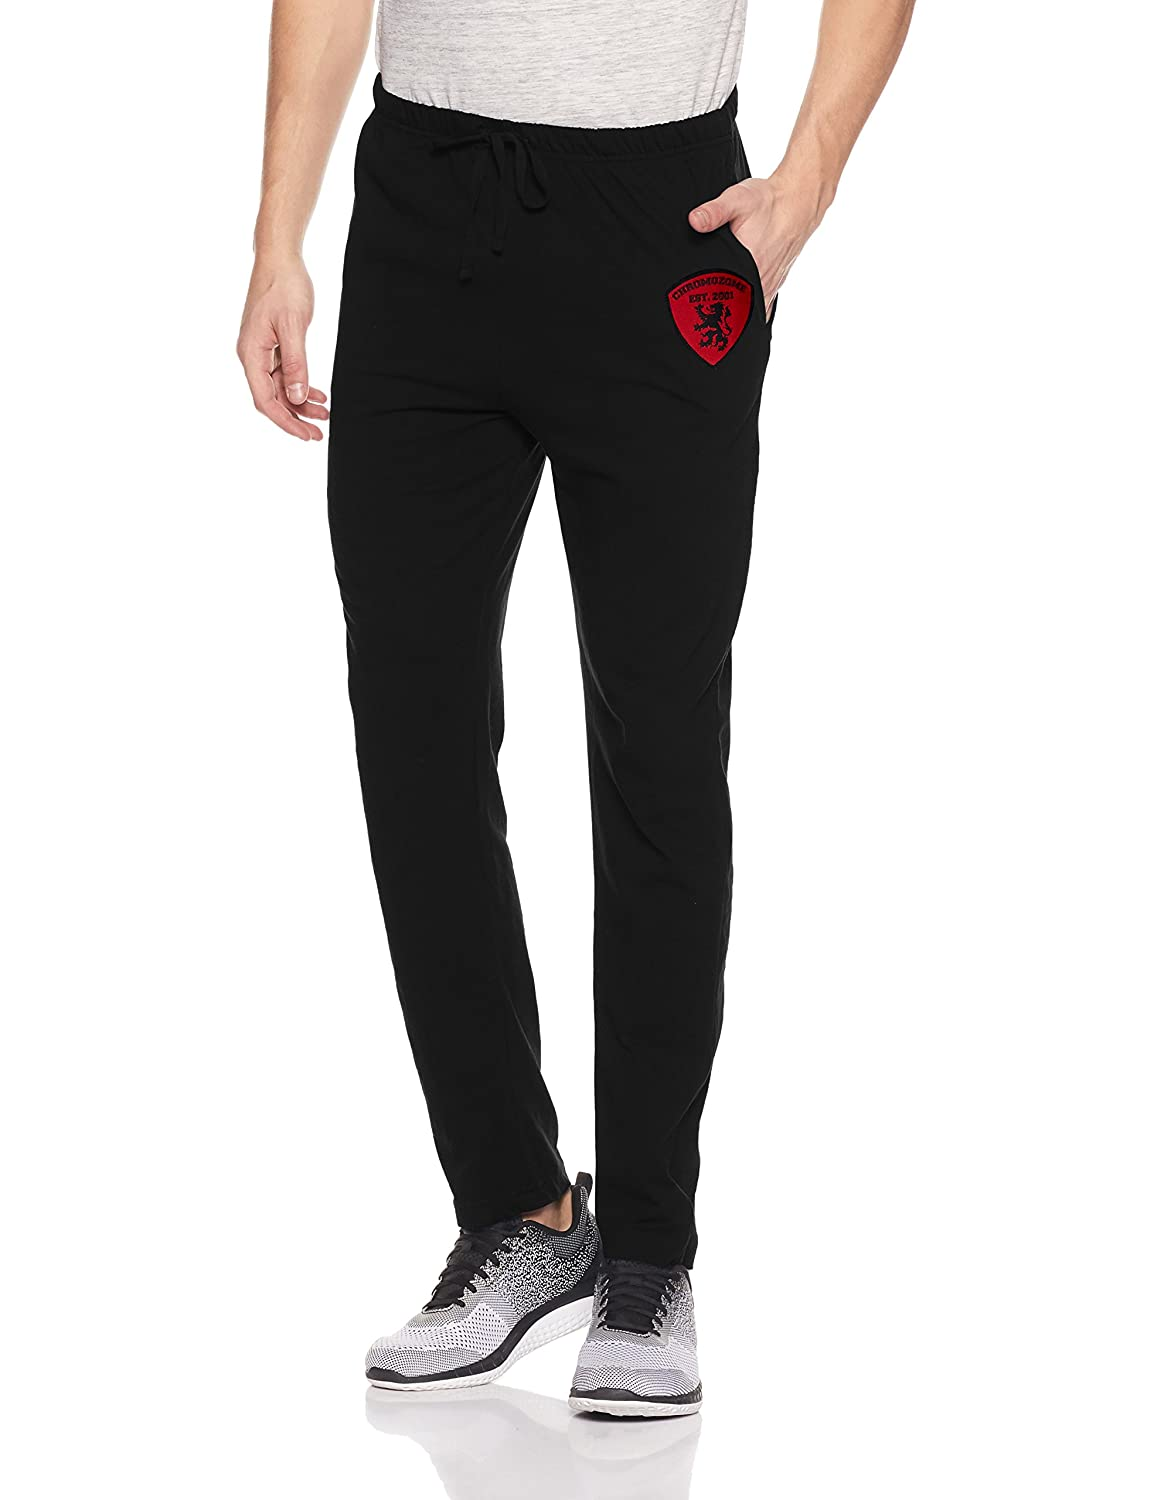 Chromozome Men's Cotton Track Pants